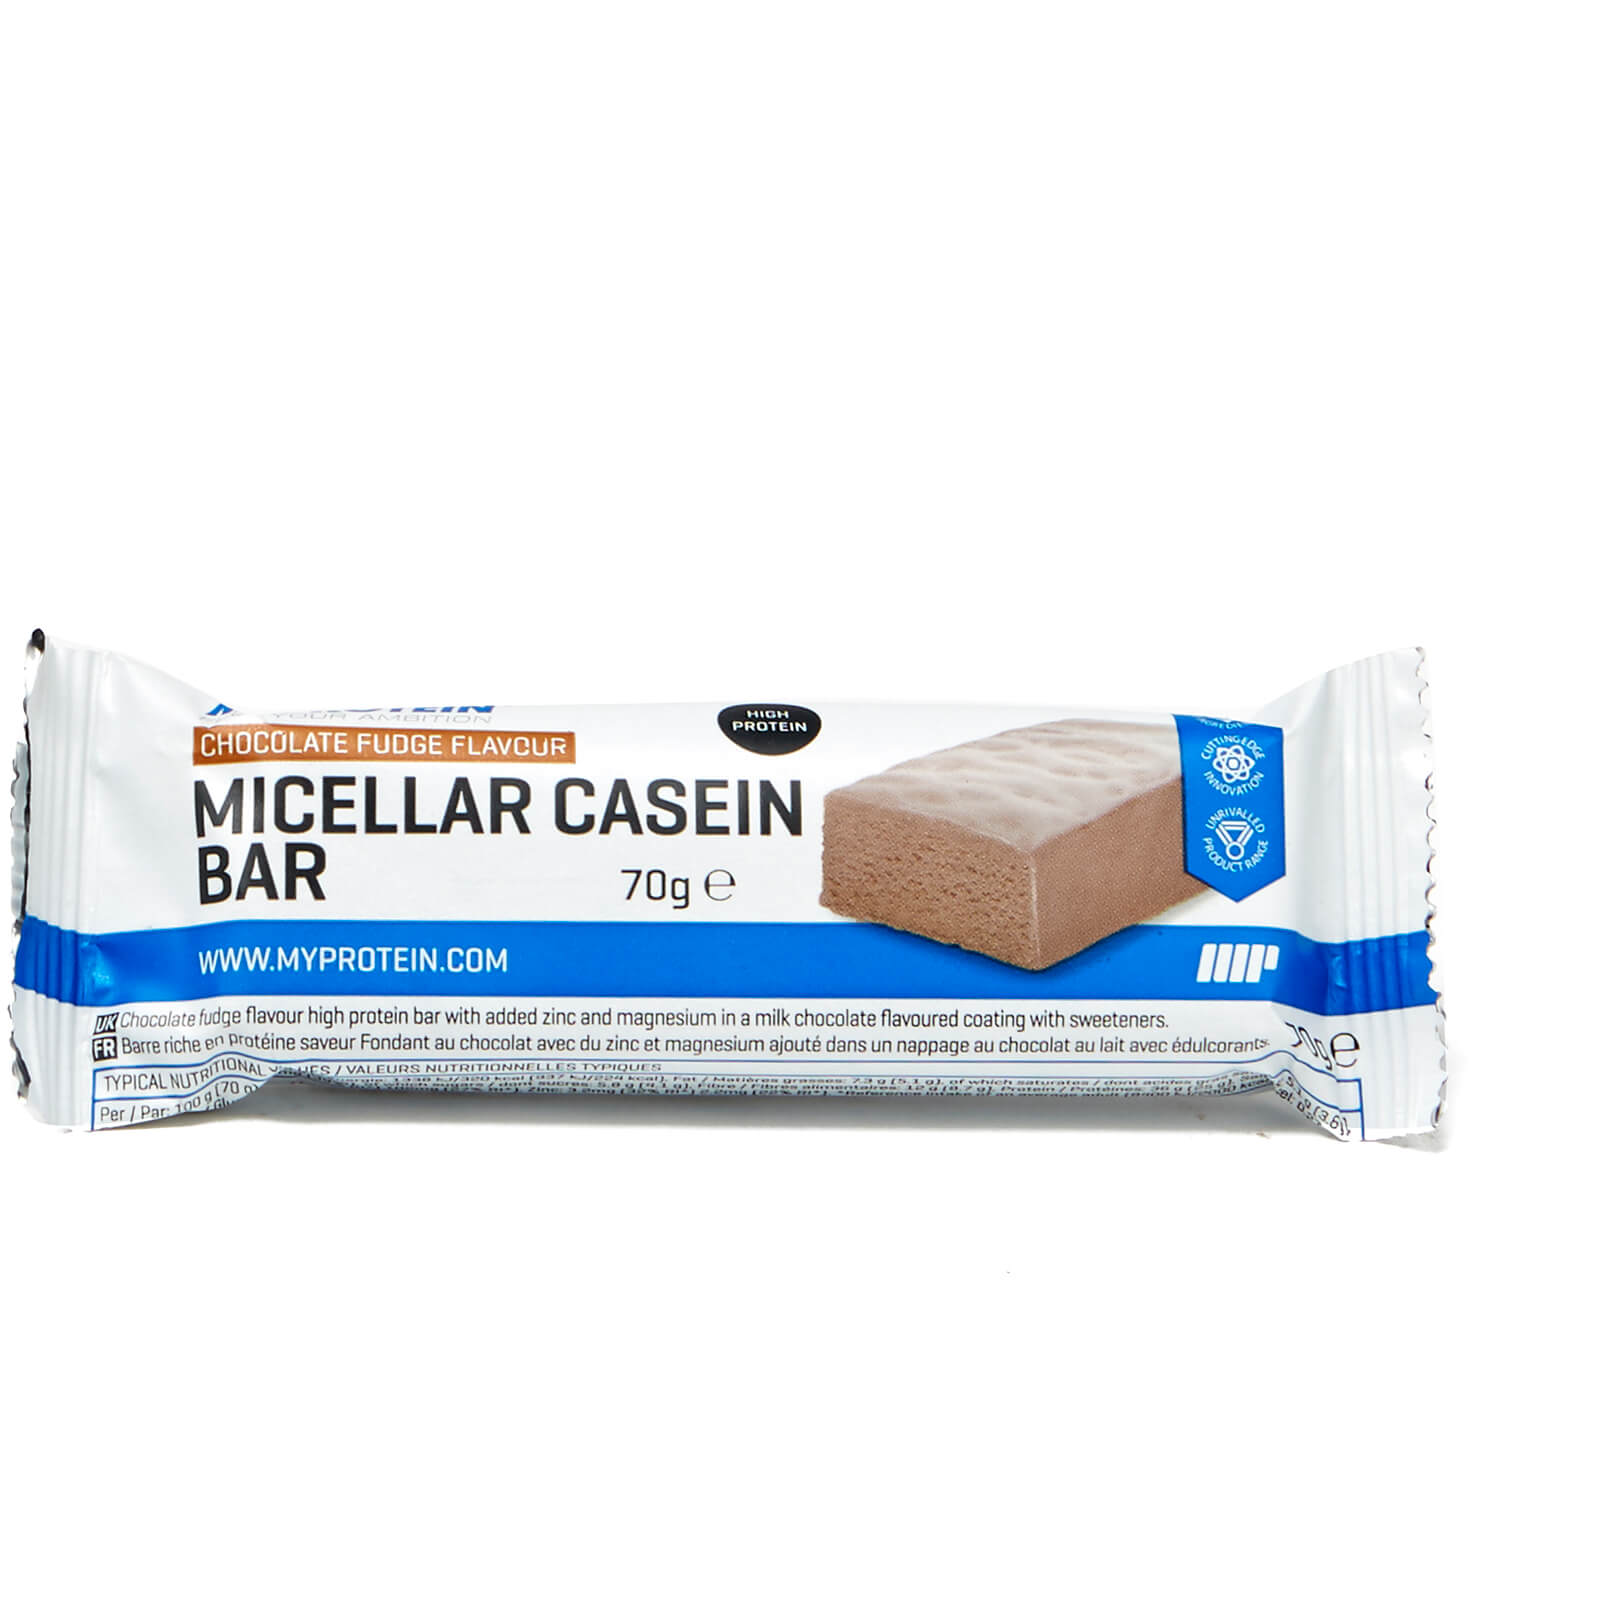 Micellar Casein Bar, Chocolate Fudge (Sample)